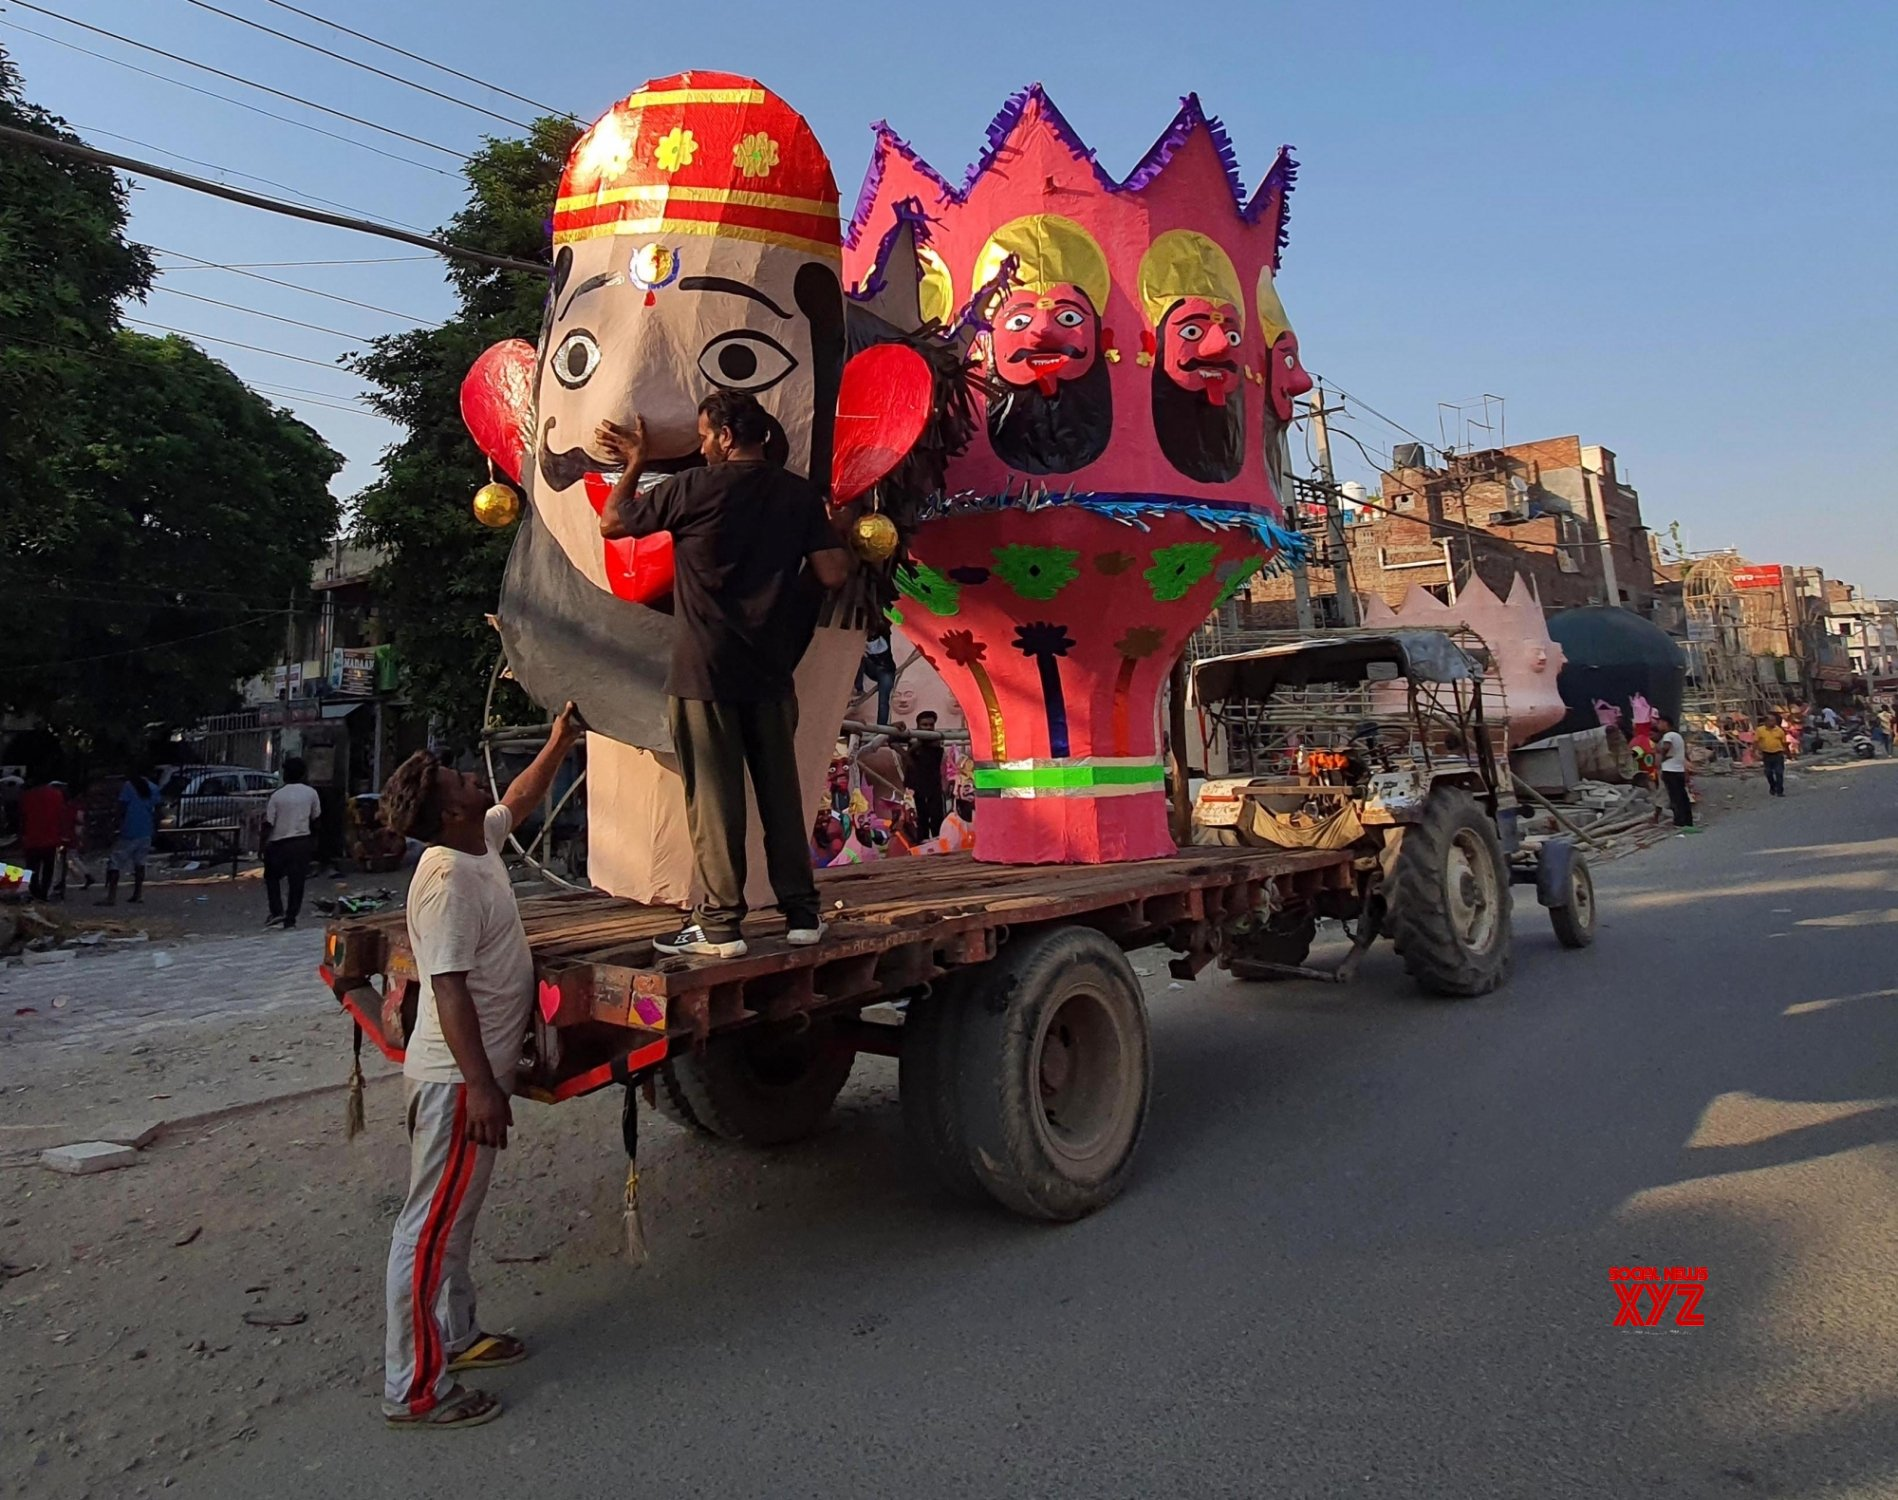 Amritsar:People carrying Effigies of the Ravana is on a tractor trolley for its installation on the eve of dussehra festival, the last day of the Navratri (nine nights) festival21) Amritsar: #Gallery